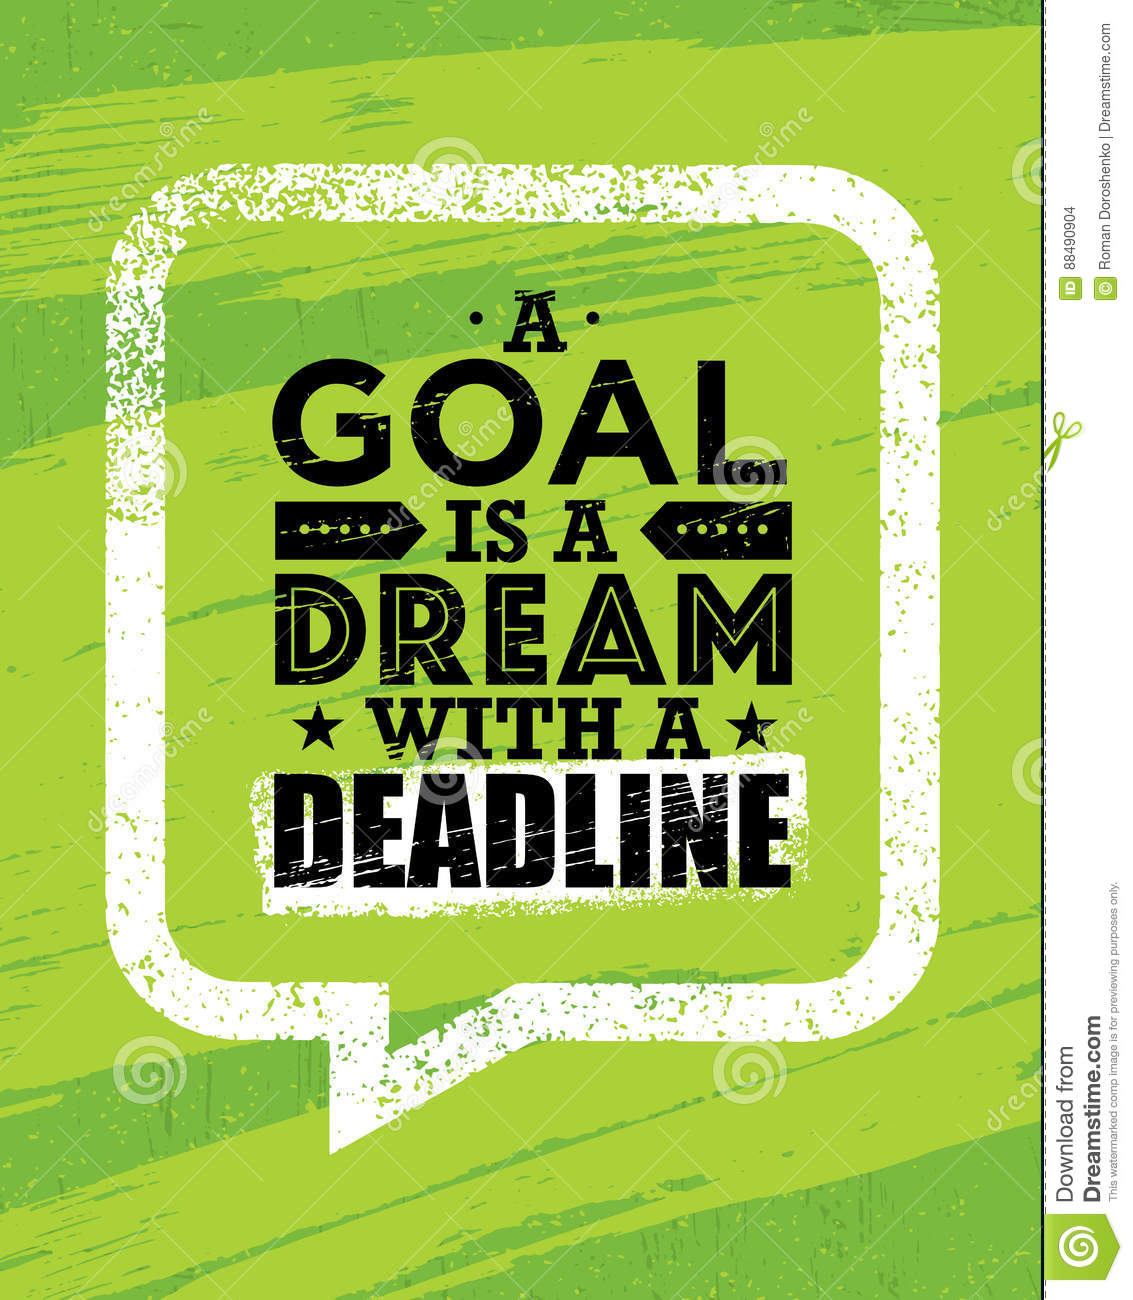 a goal is a dream with deadline inspiring creative motivation quote